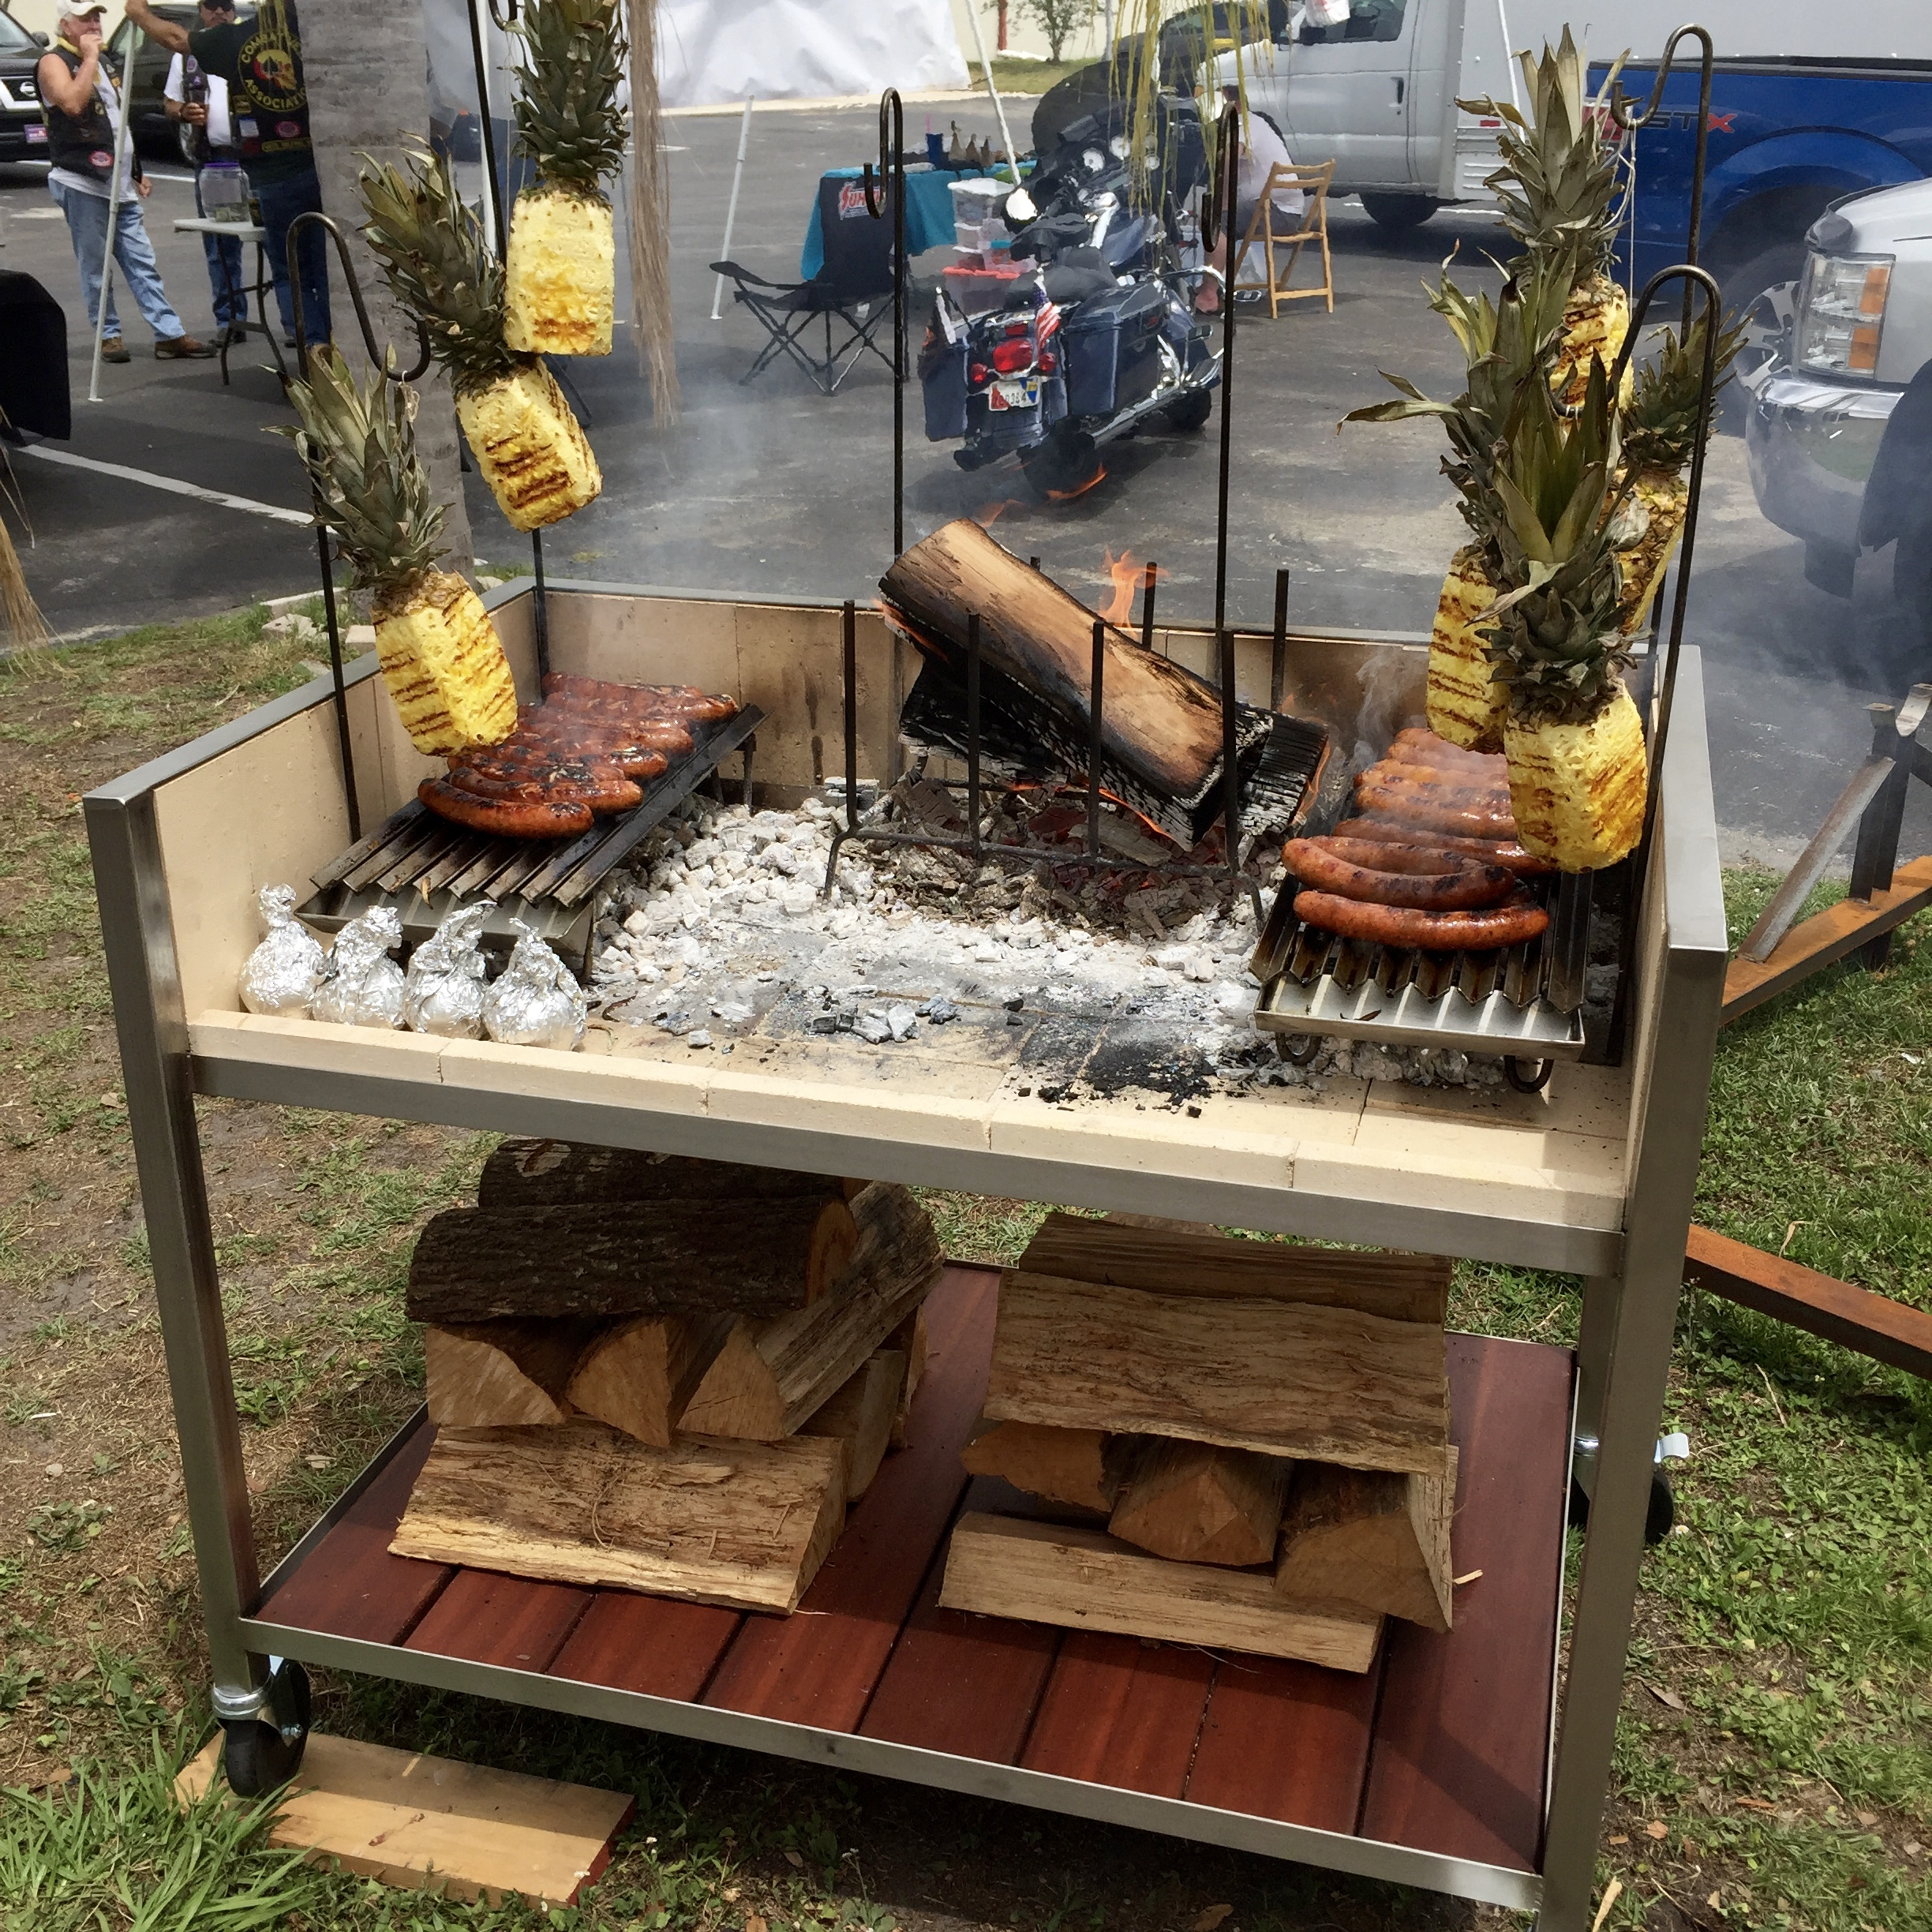 Urban Asado® out grilling for the Latin American Motorcycle Association.